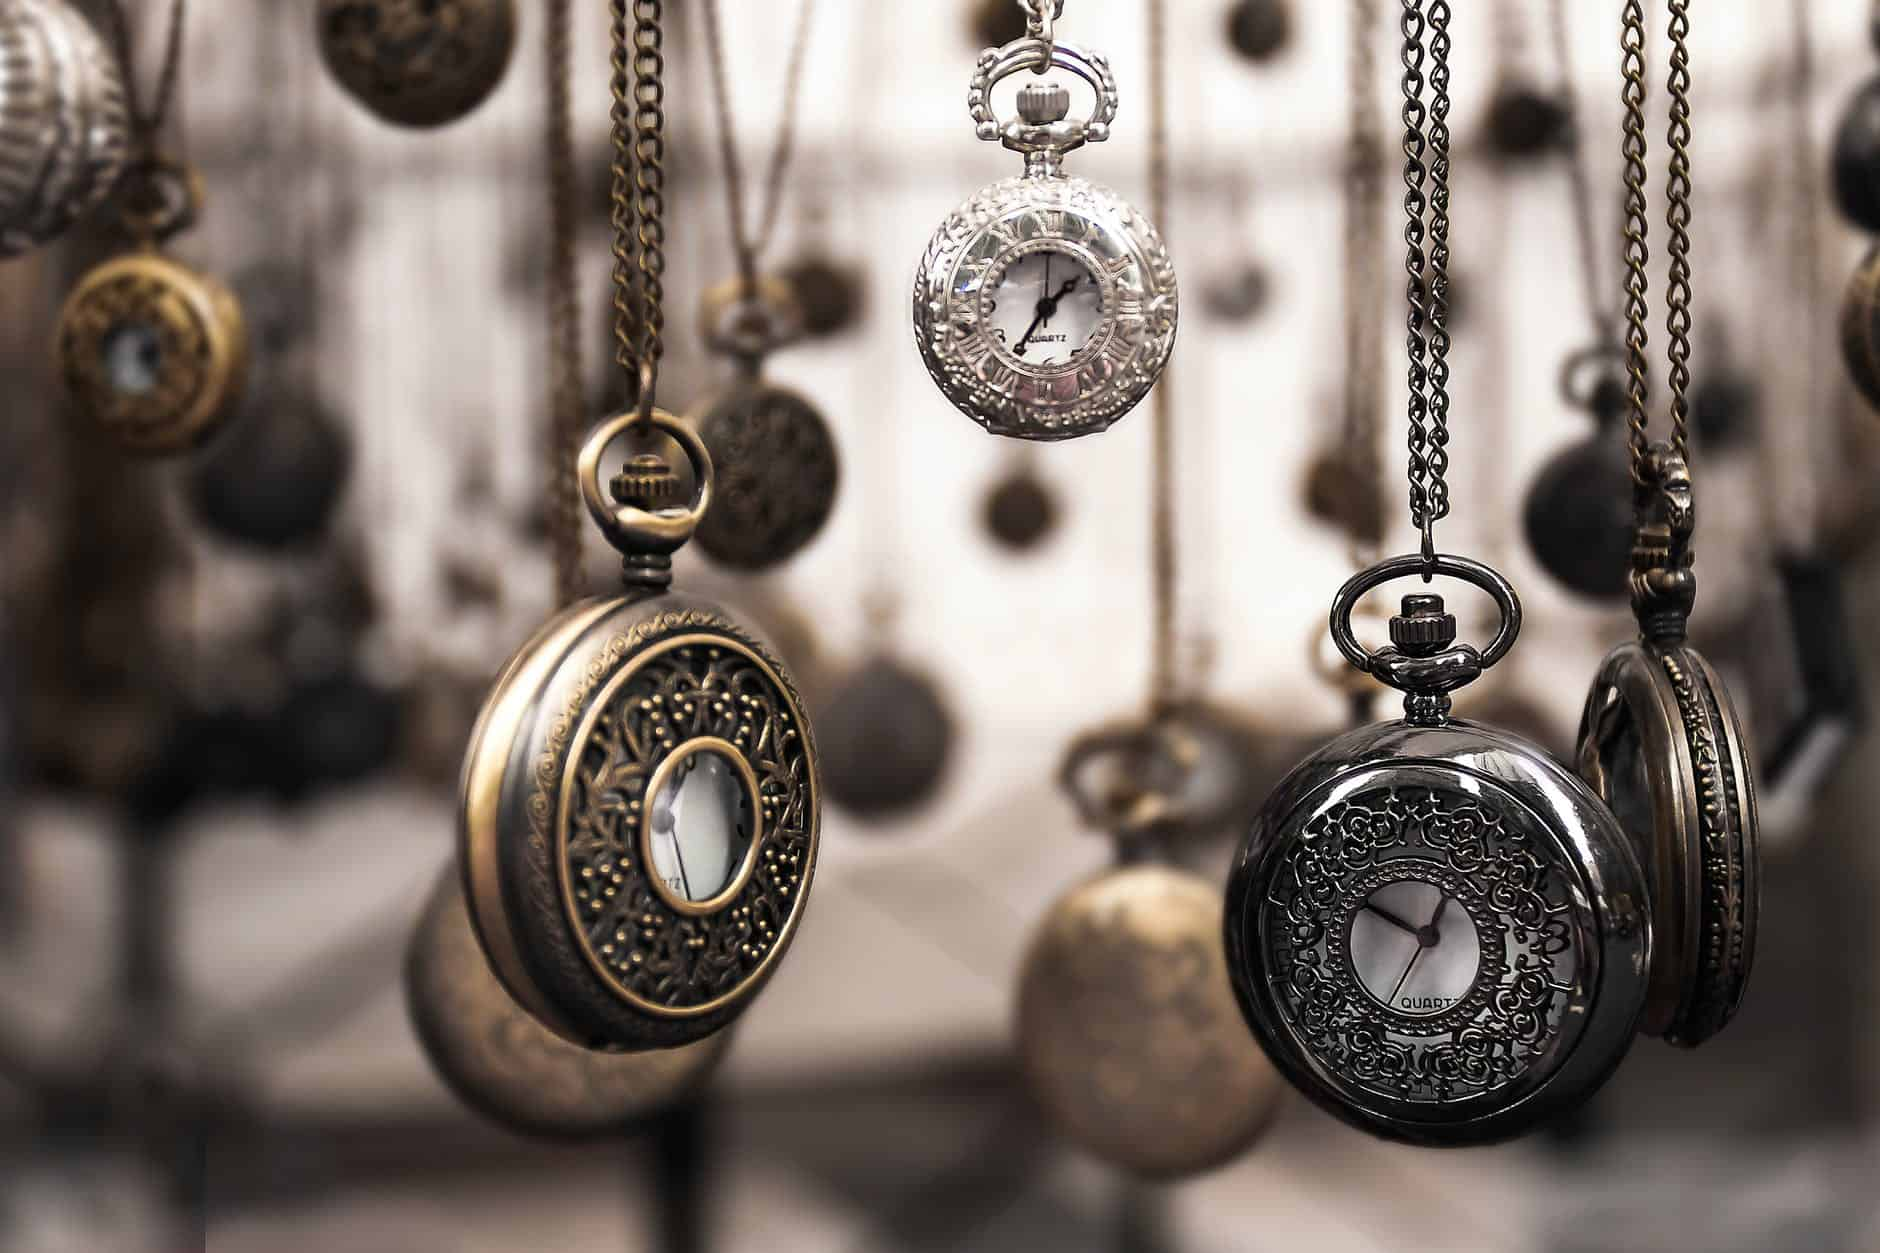 Astrology Accessories Decoration For Mysterious And Dreamy Look